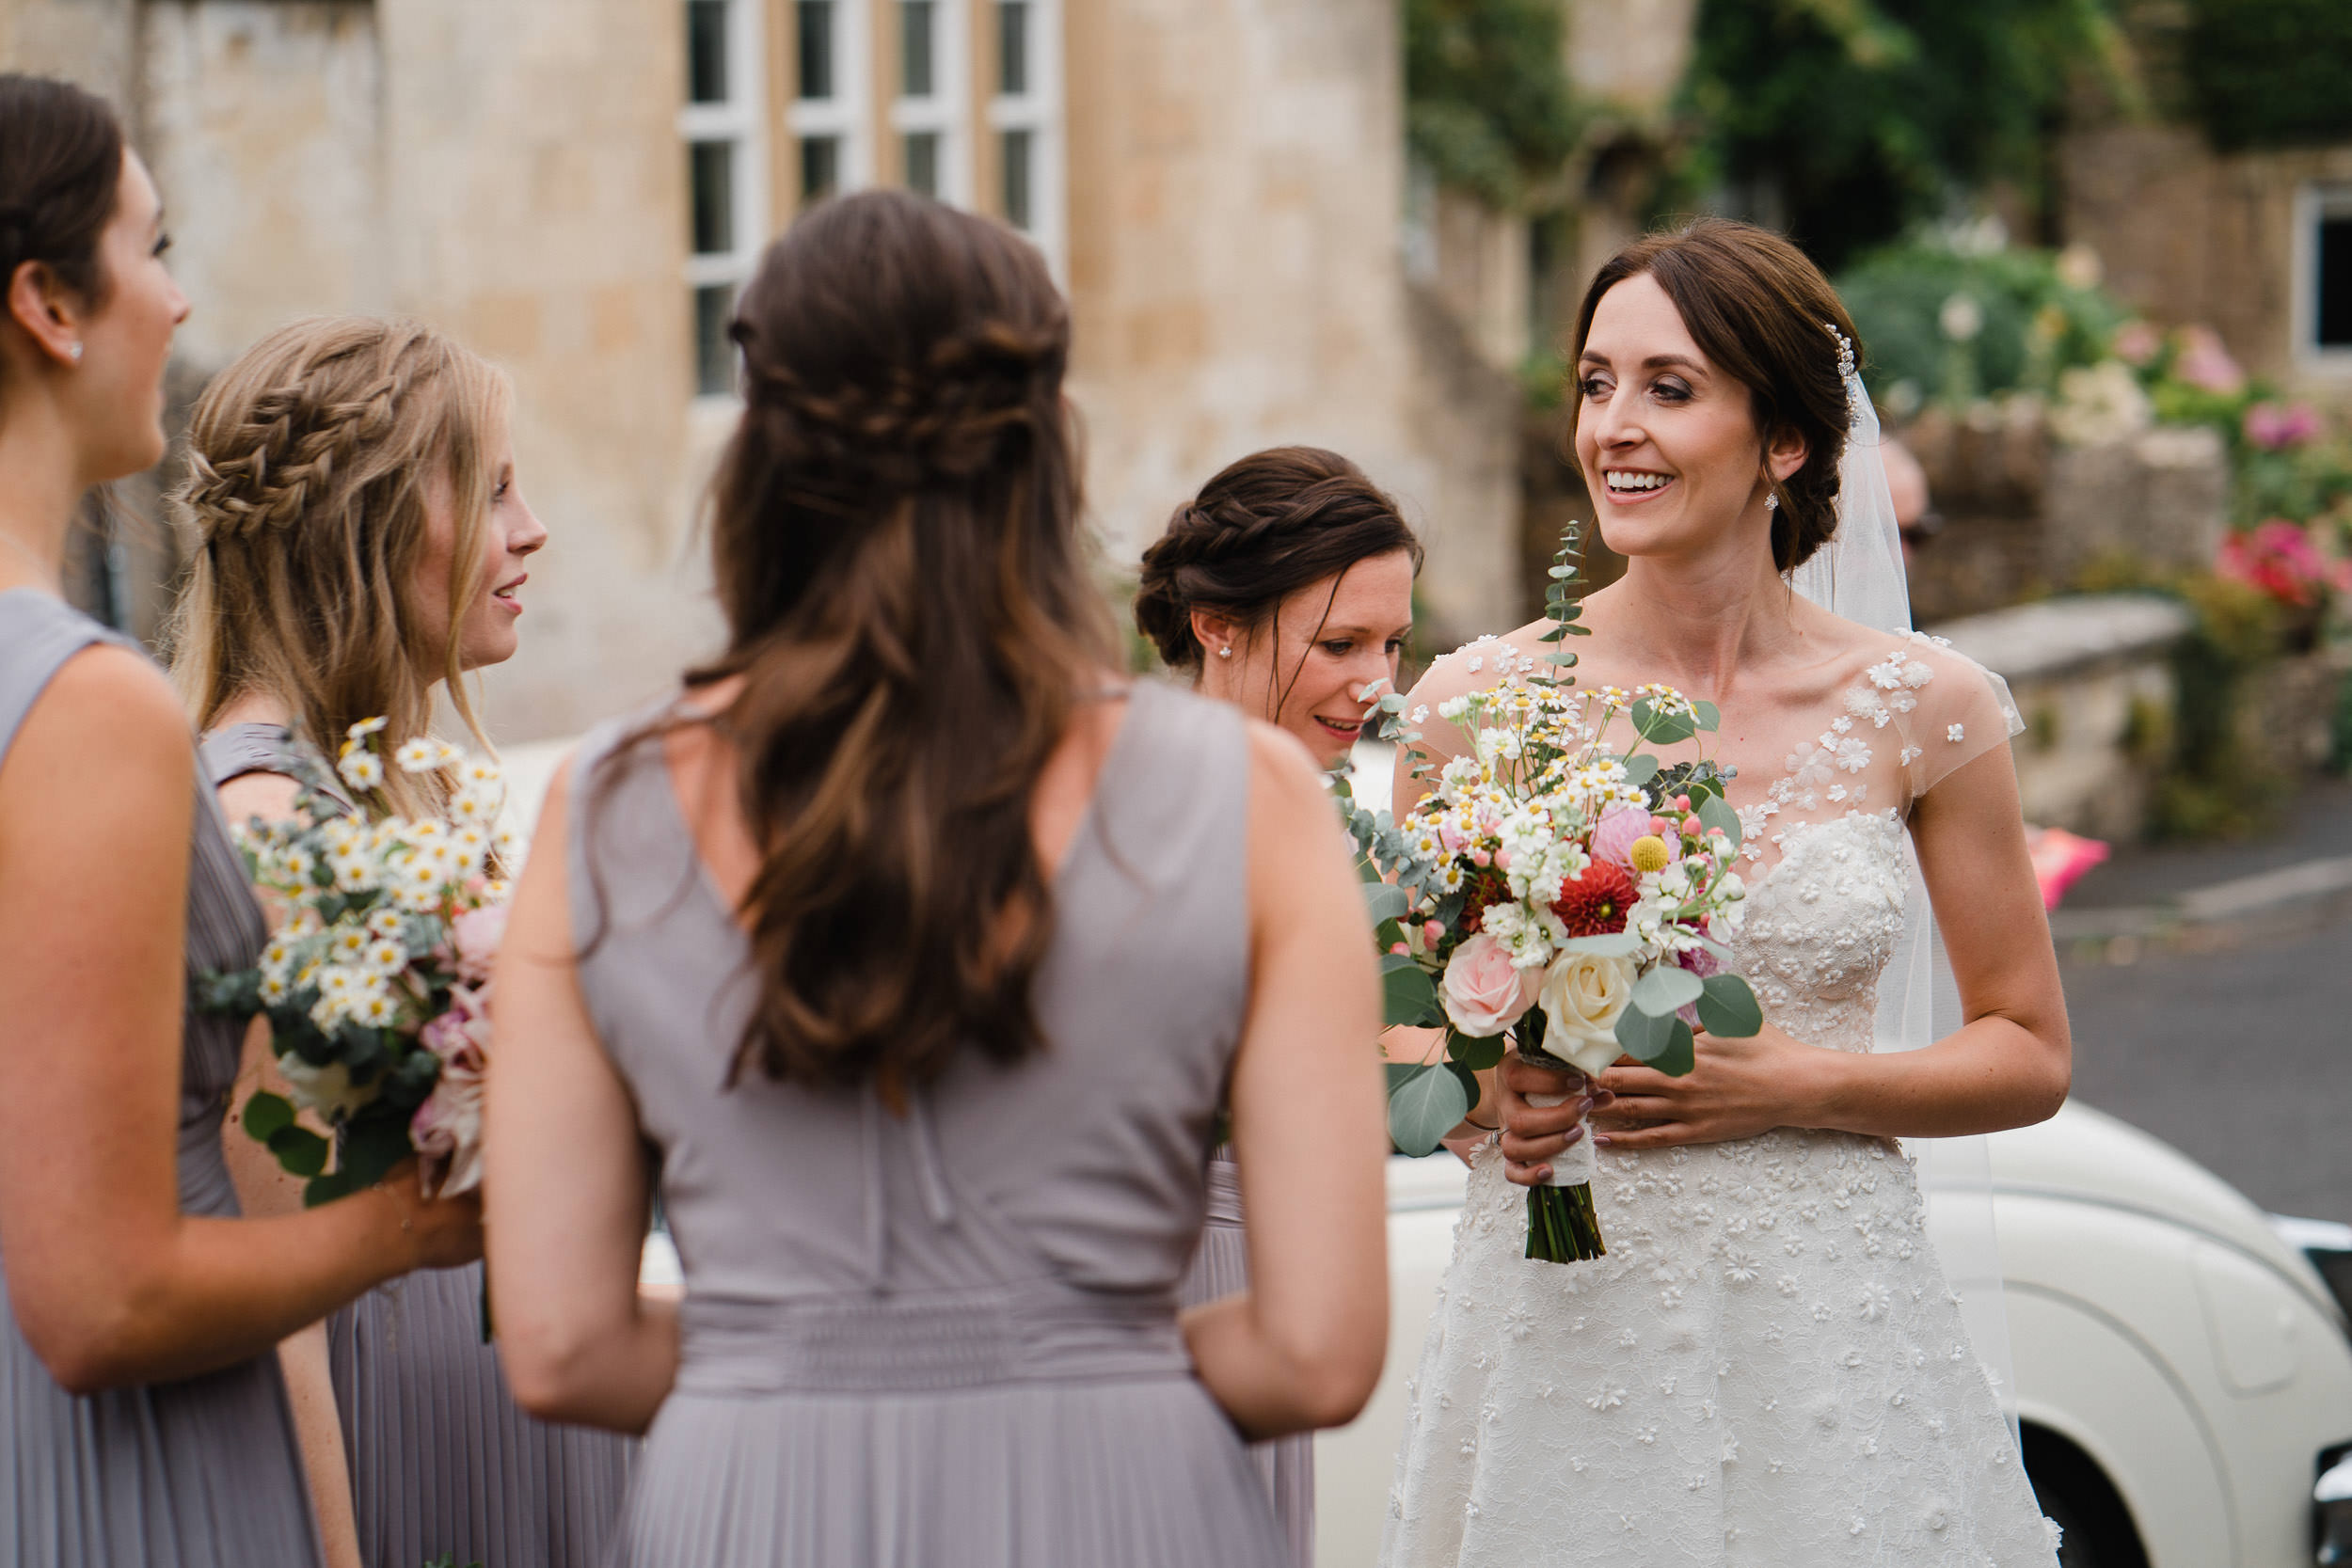 Orchardleigh Estate Wedding - Bride and Bridesmaids outside the church